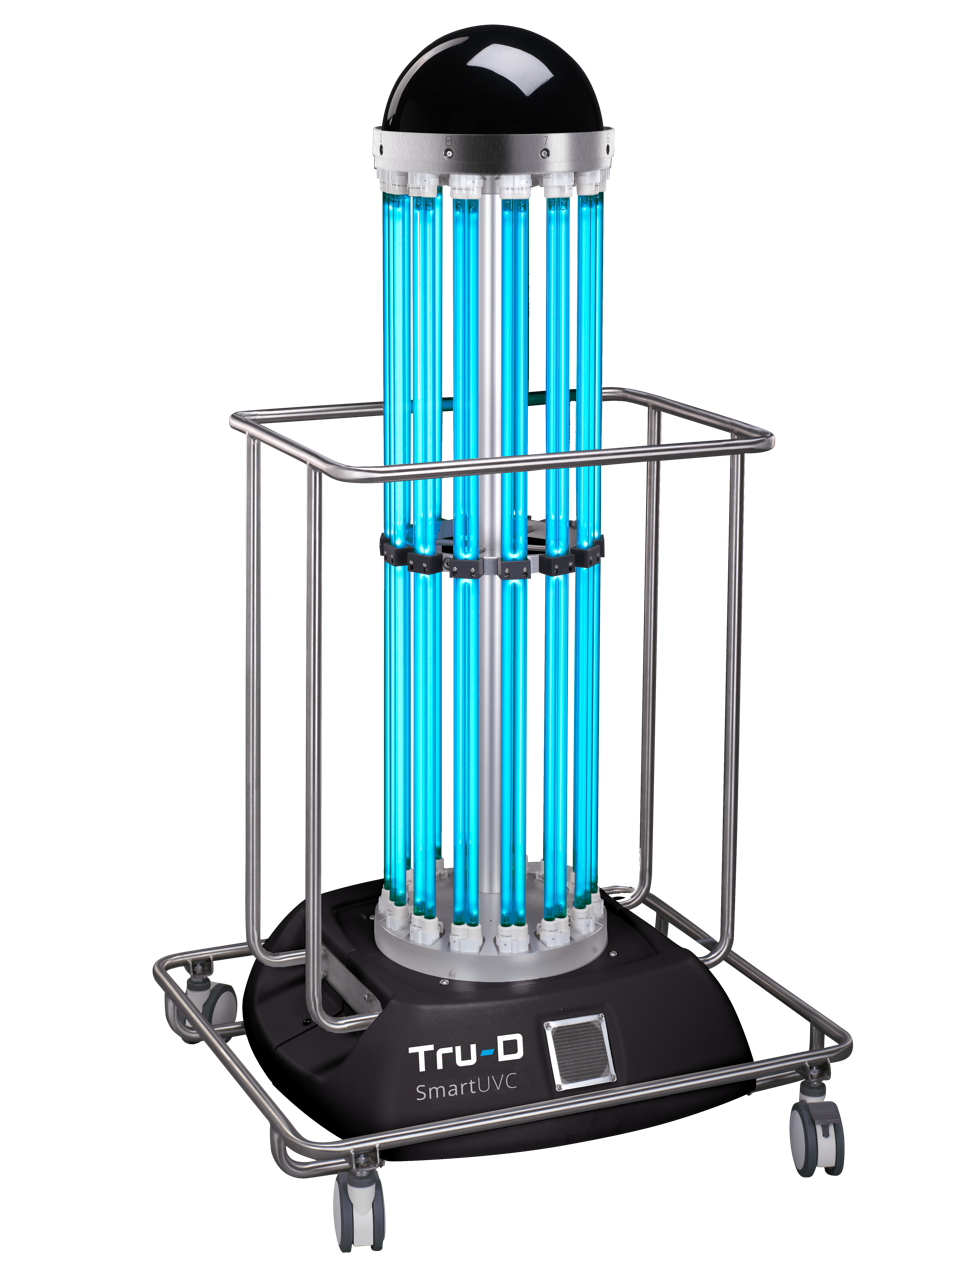 Tru-D SmartUVC to Exhibit at APIC Conference